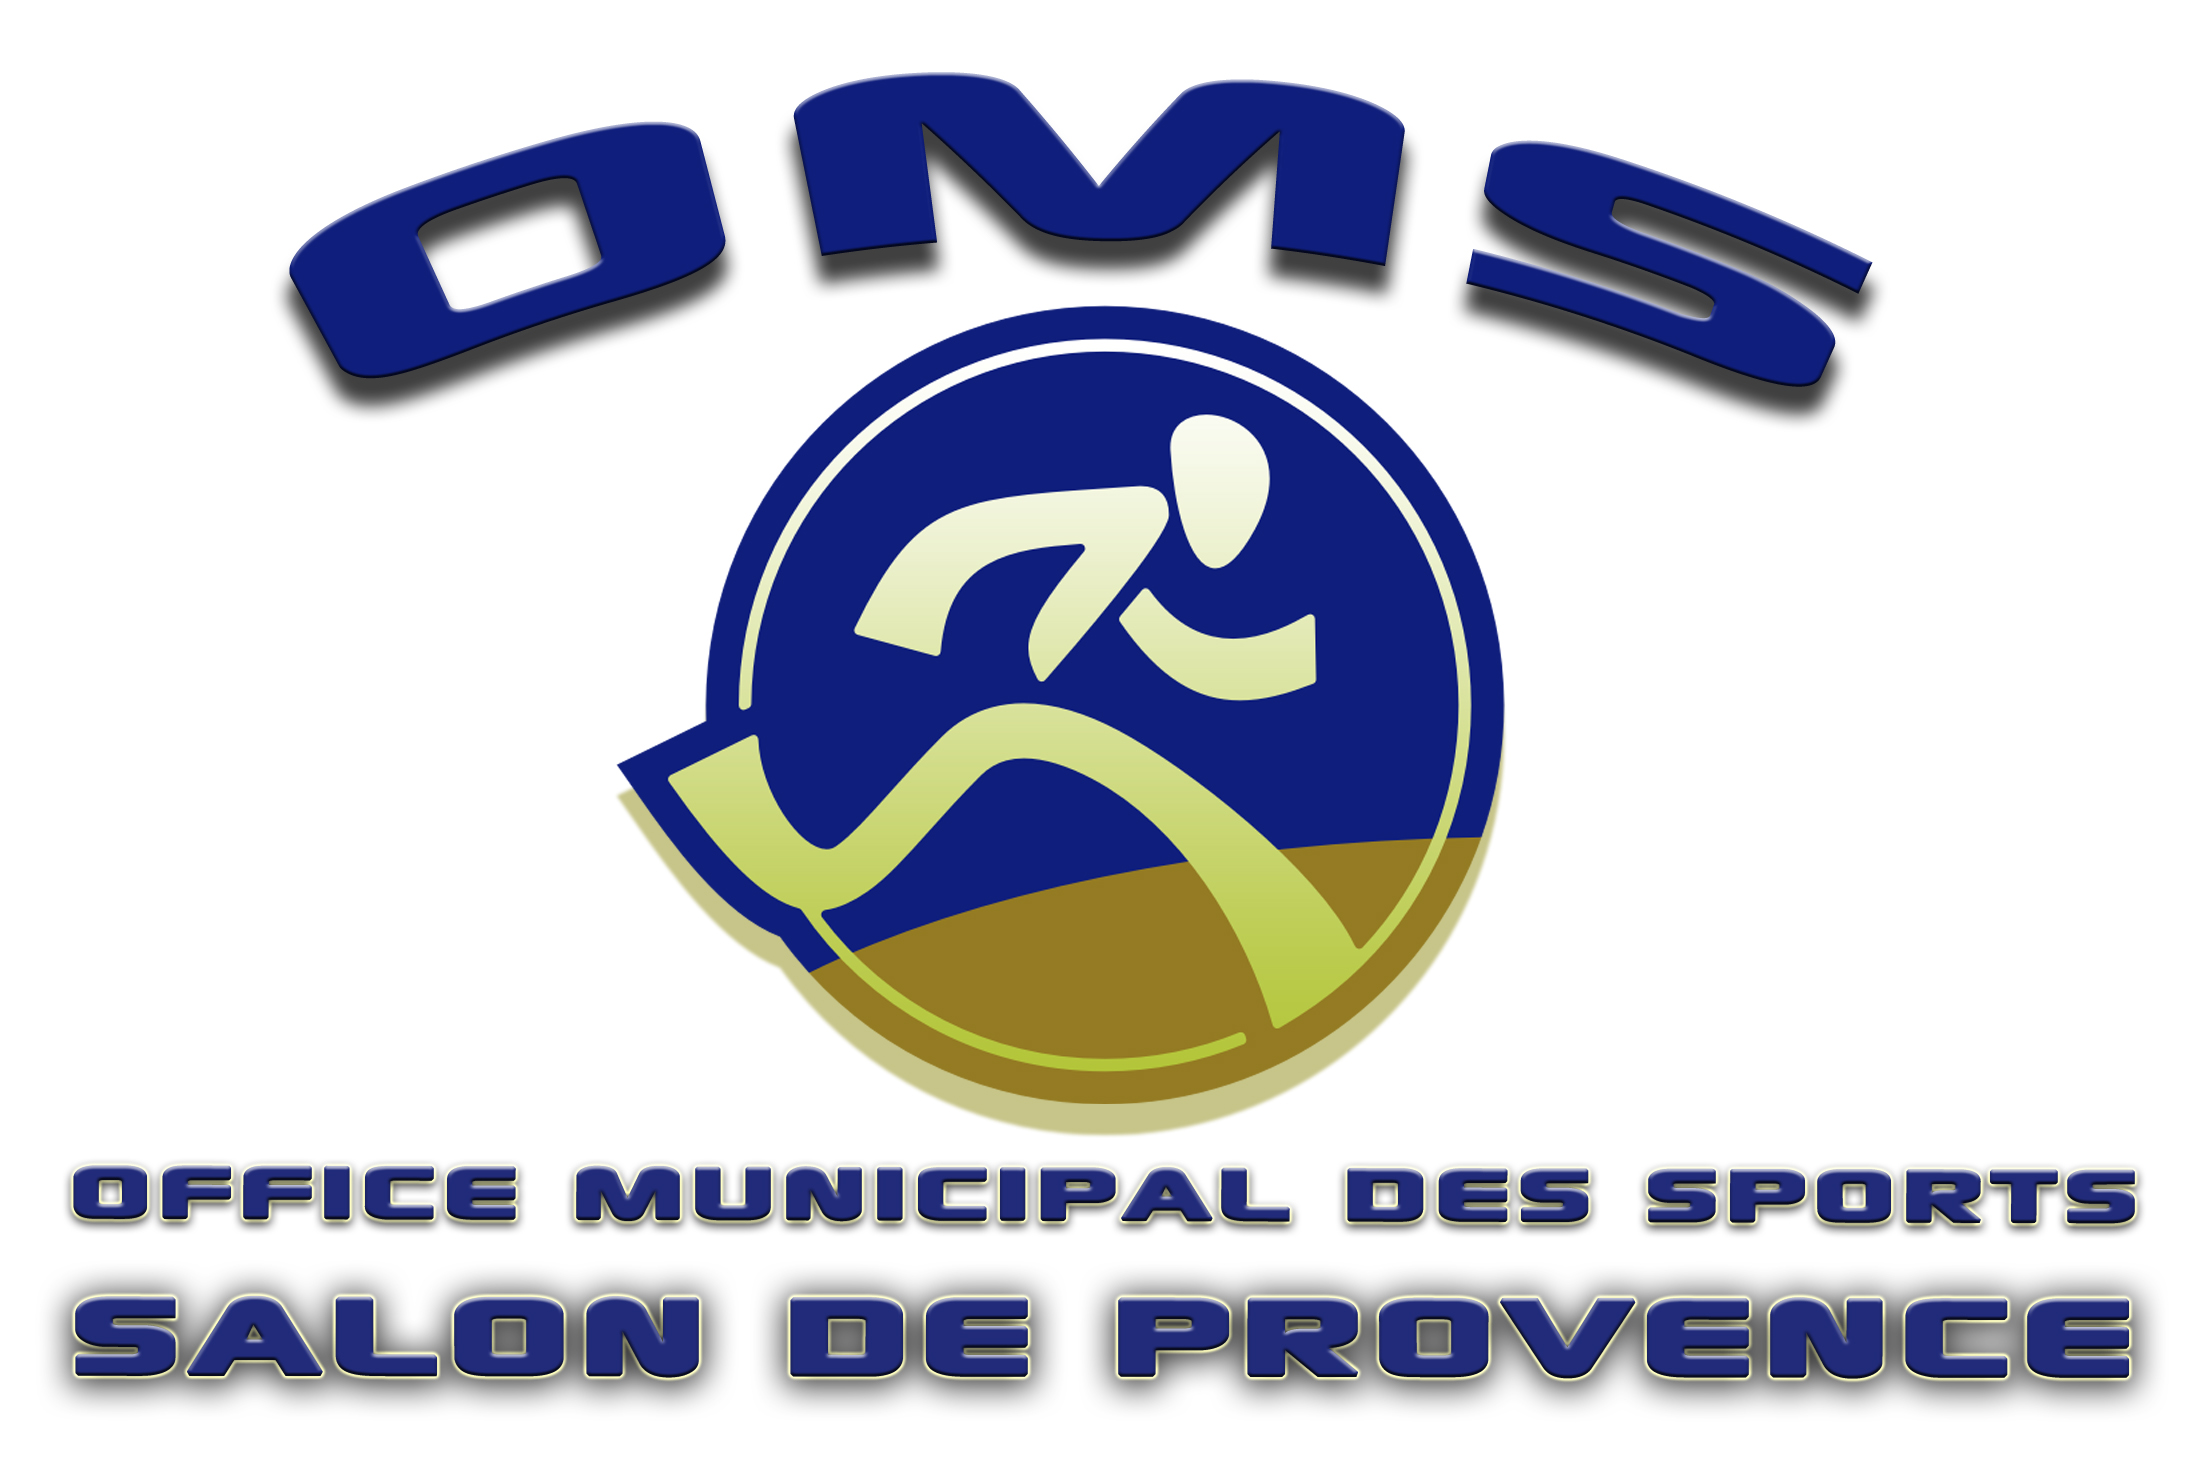 Office Municipal des Sports Salon de Provence